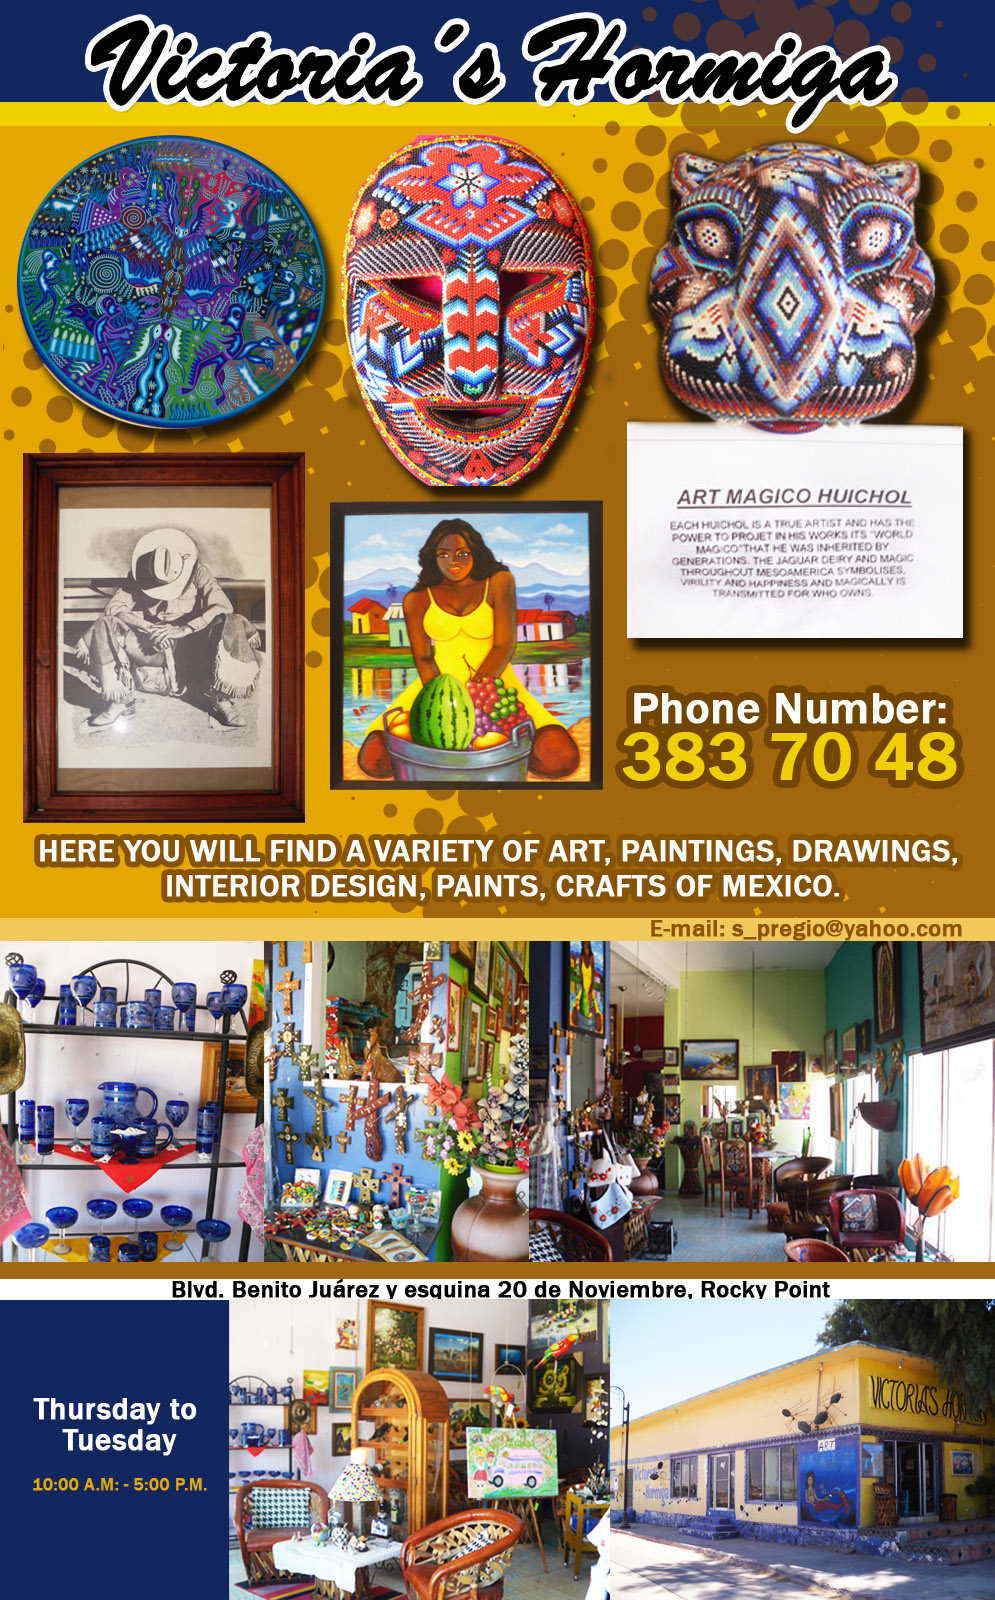 Victorias Hormiga-HERE YOU WILL FIND A VARIETY OF ART, PAINTINGS, DRAWINGS, INTERIOR DESIGN, PAINTS, CRAFTS OF MEXICO.